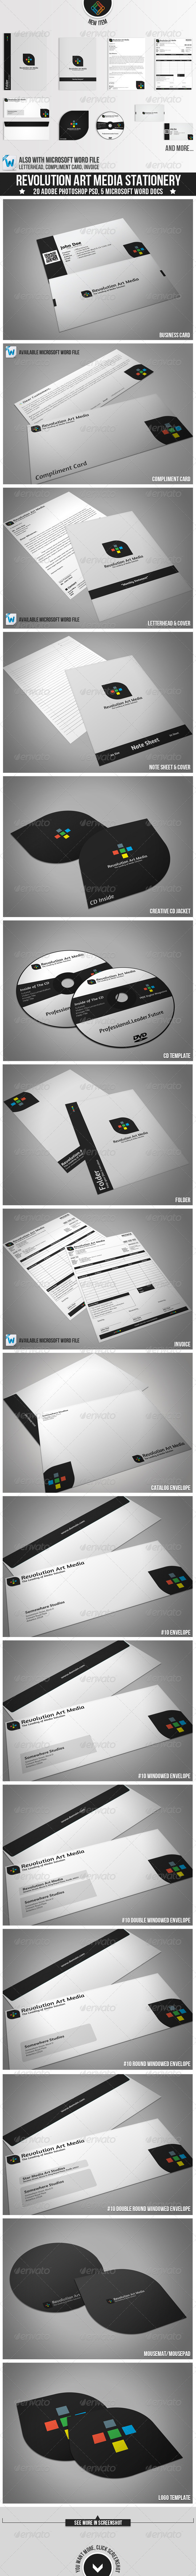 Revolution Art Media Stationery - Stationery Print Templates